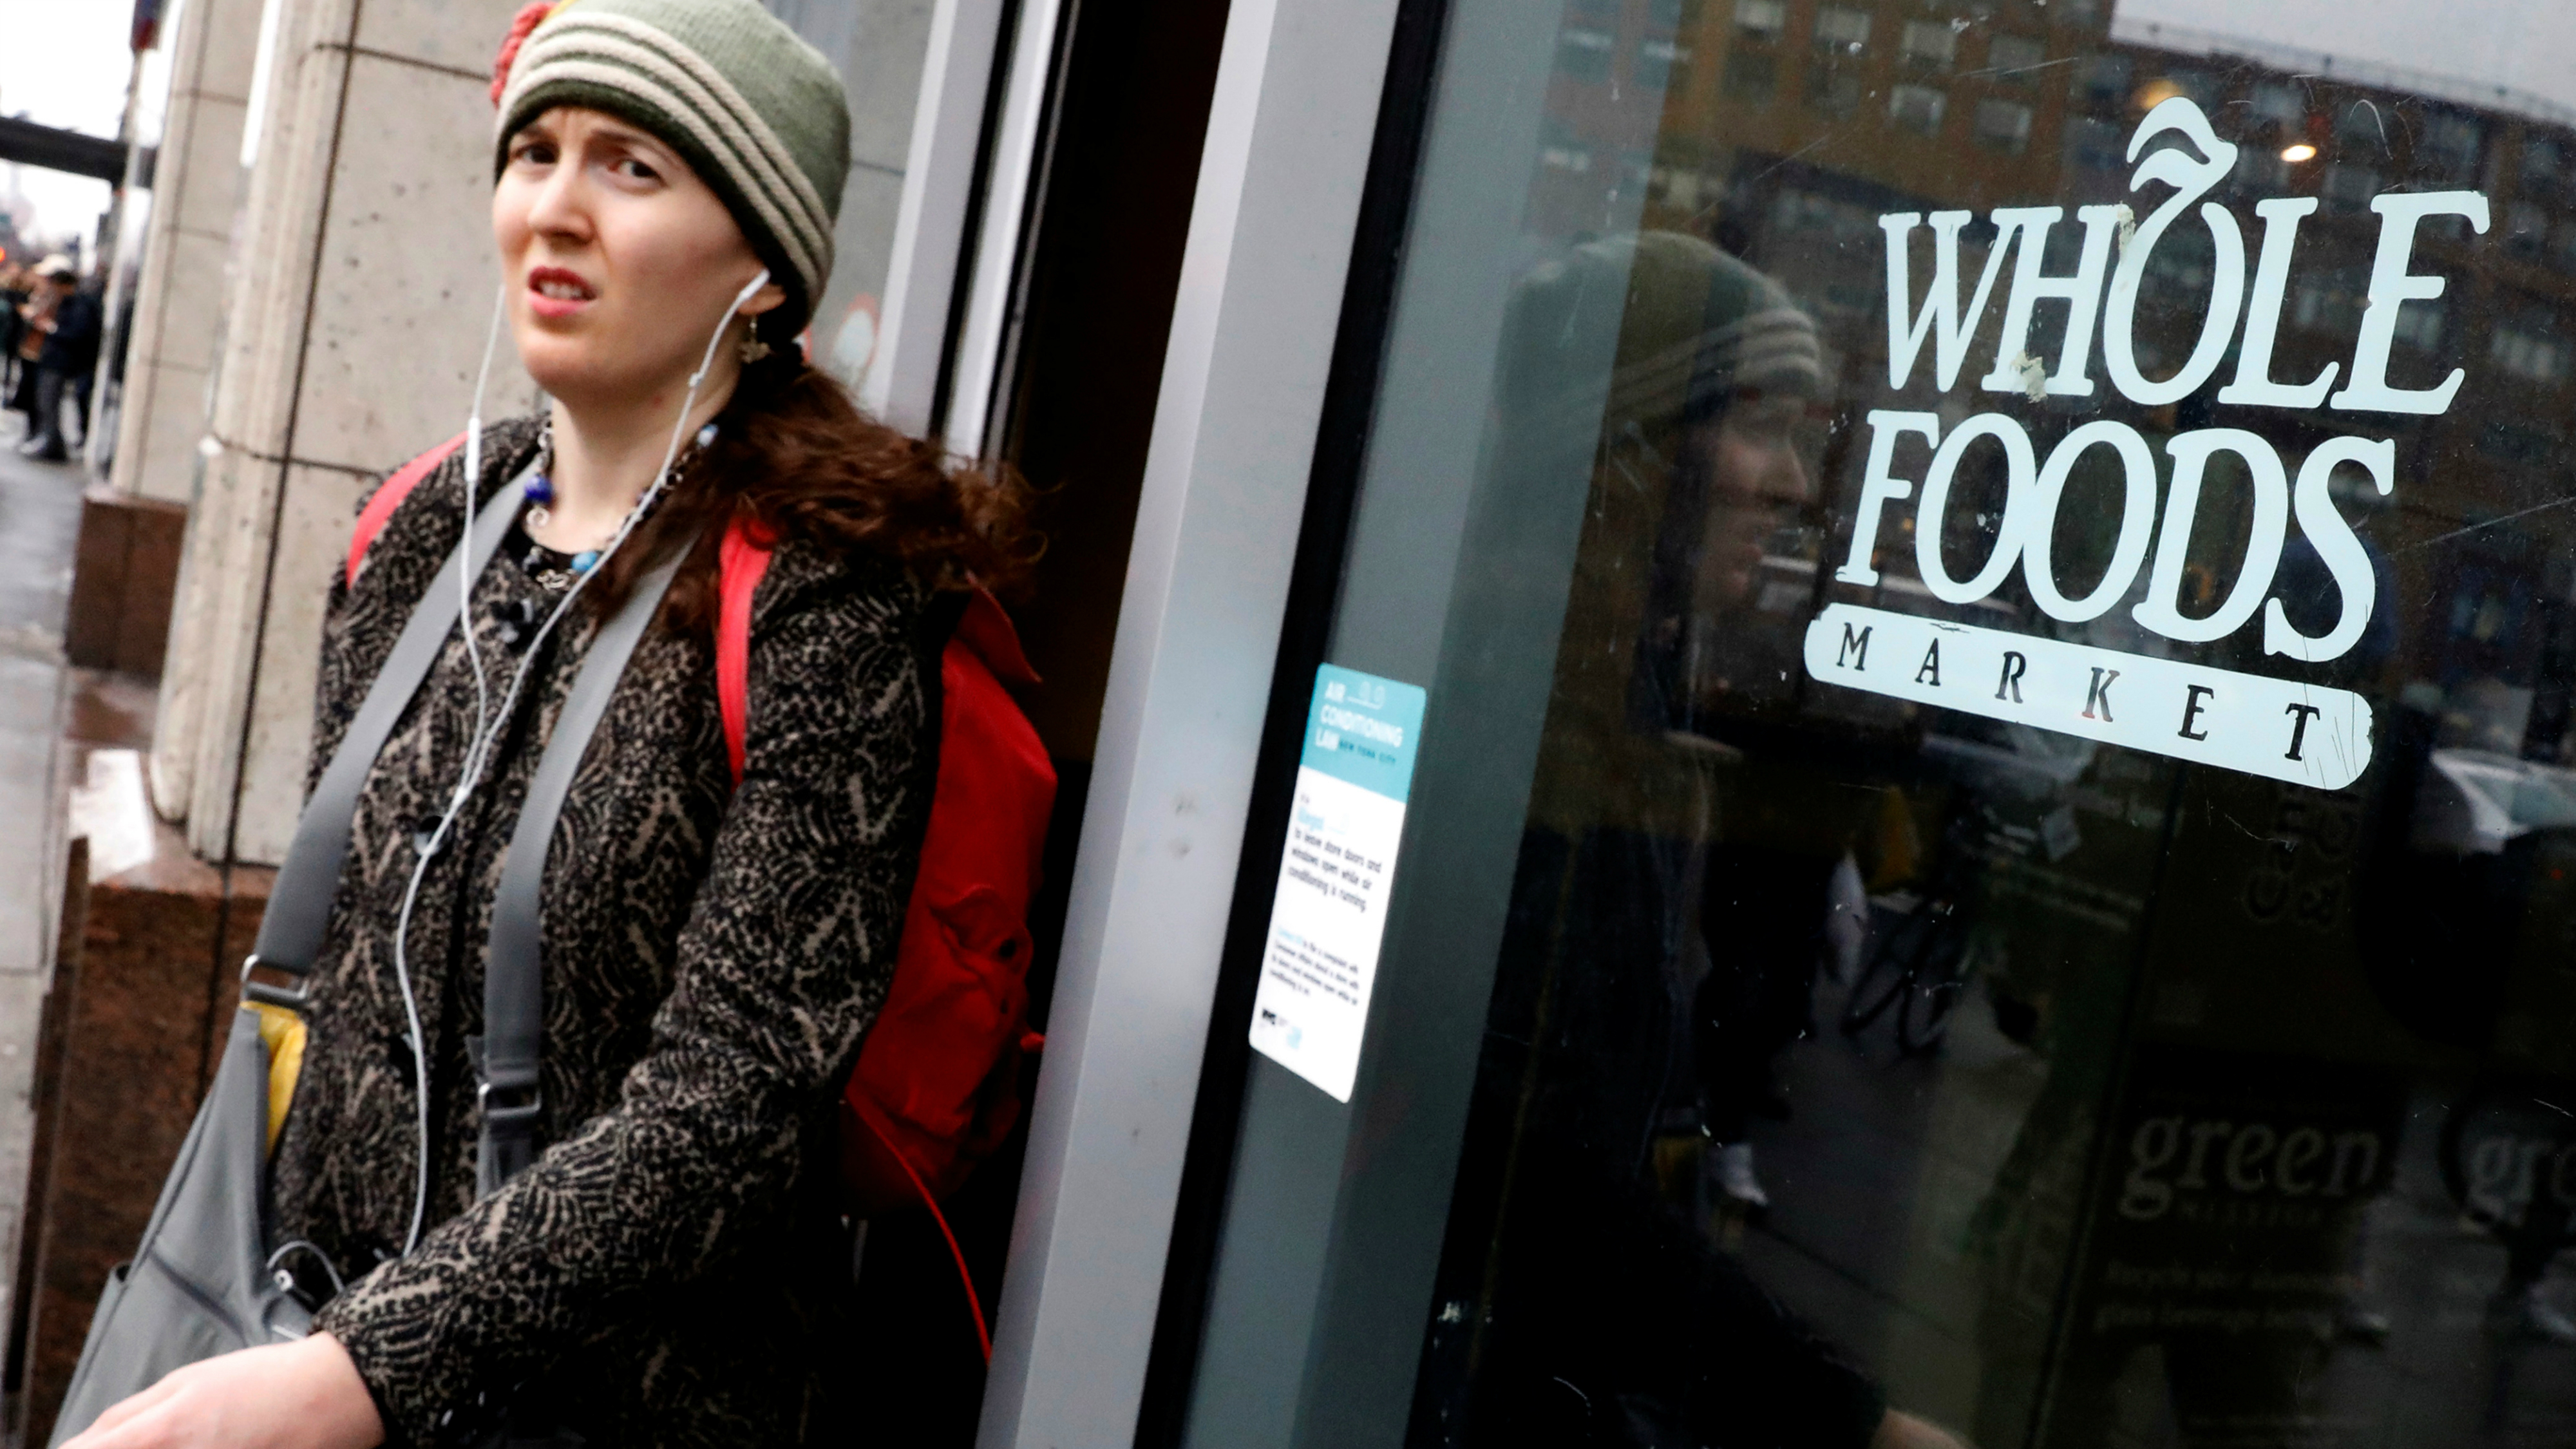 The hunt for cheaper food leaves Whole Foods in a lurch.